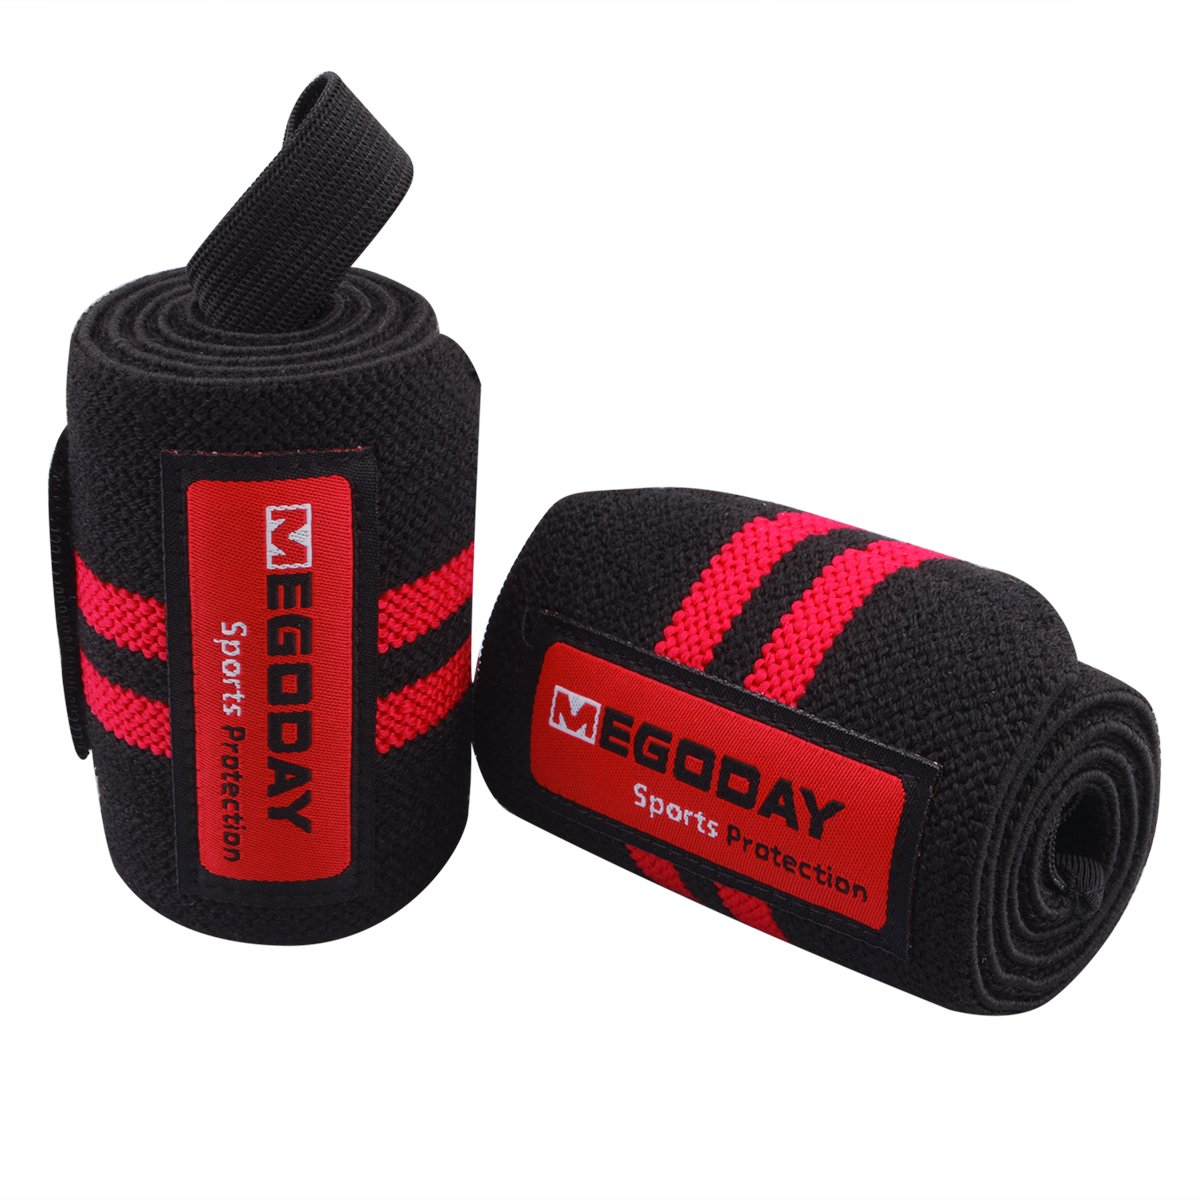 Wrist Straps Wraps Guard (24'', Adjustable,1 Pair,Unisex) Wrist Supports Stabilizer with Thumb Loops,Heavy Duty Compression Wristbands for Strength Muscle Training,Powerlifting,Bodybuilding,Gym